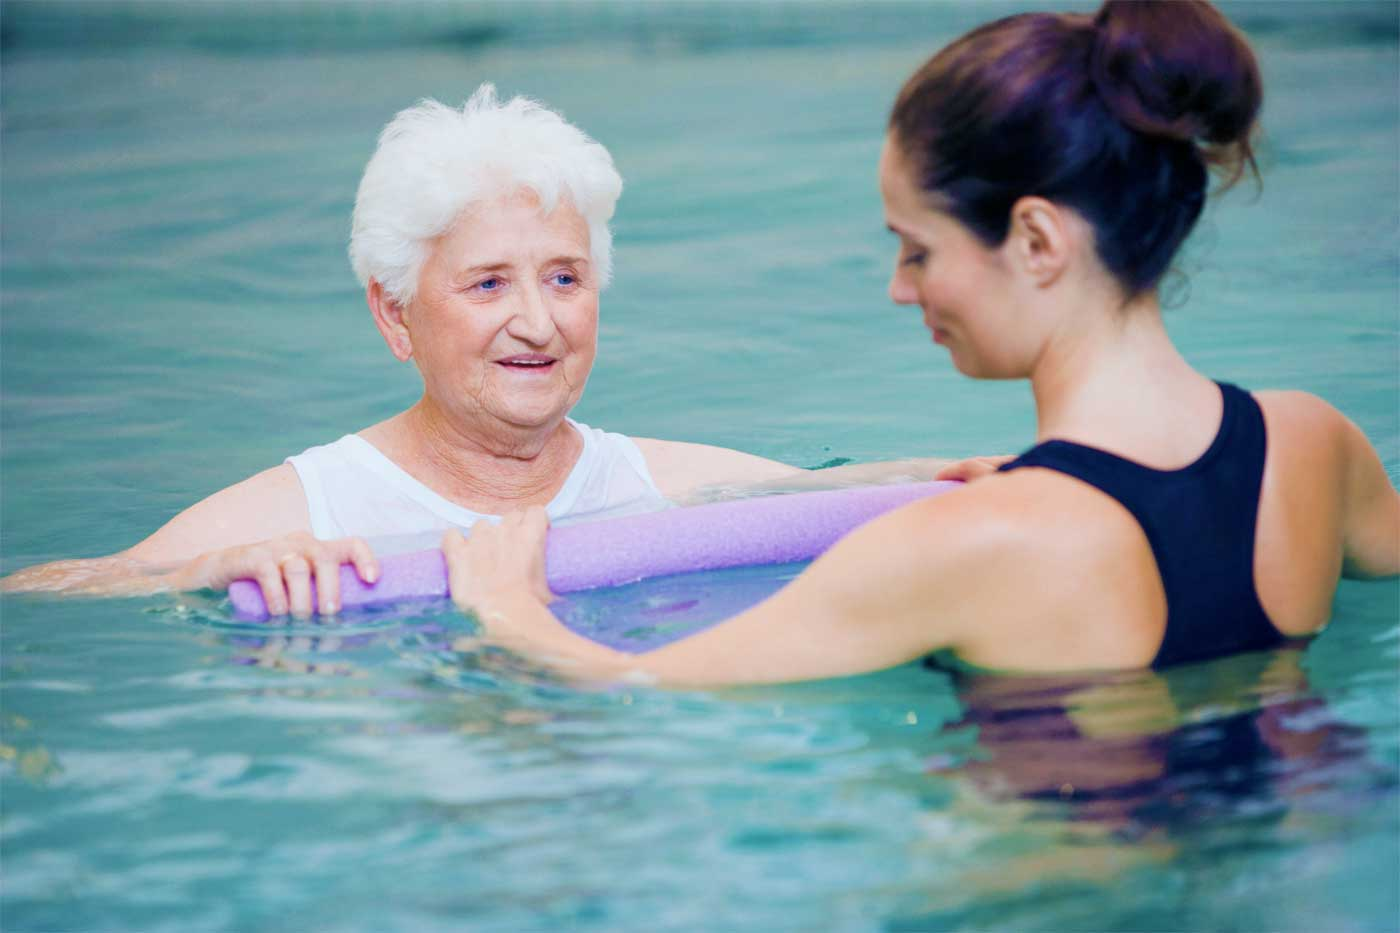 Physical and psychic benefits of hydrotherapy - Thrive Global